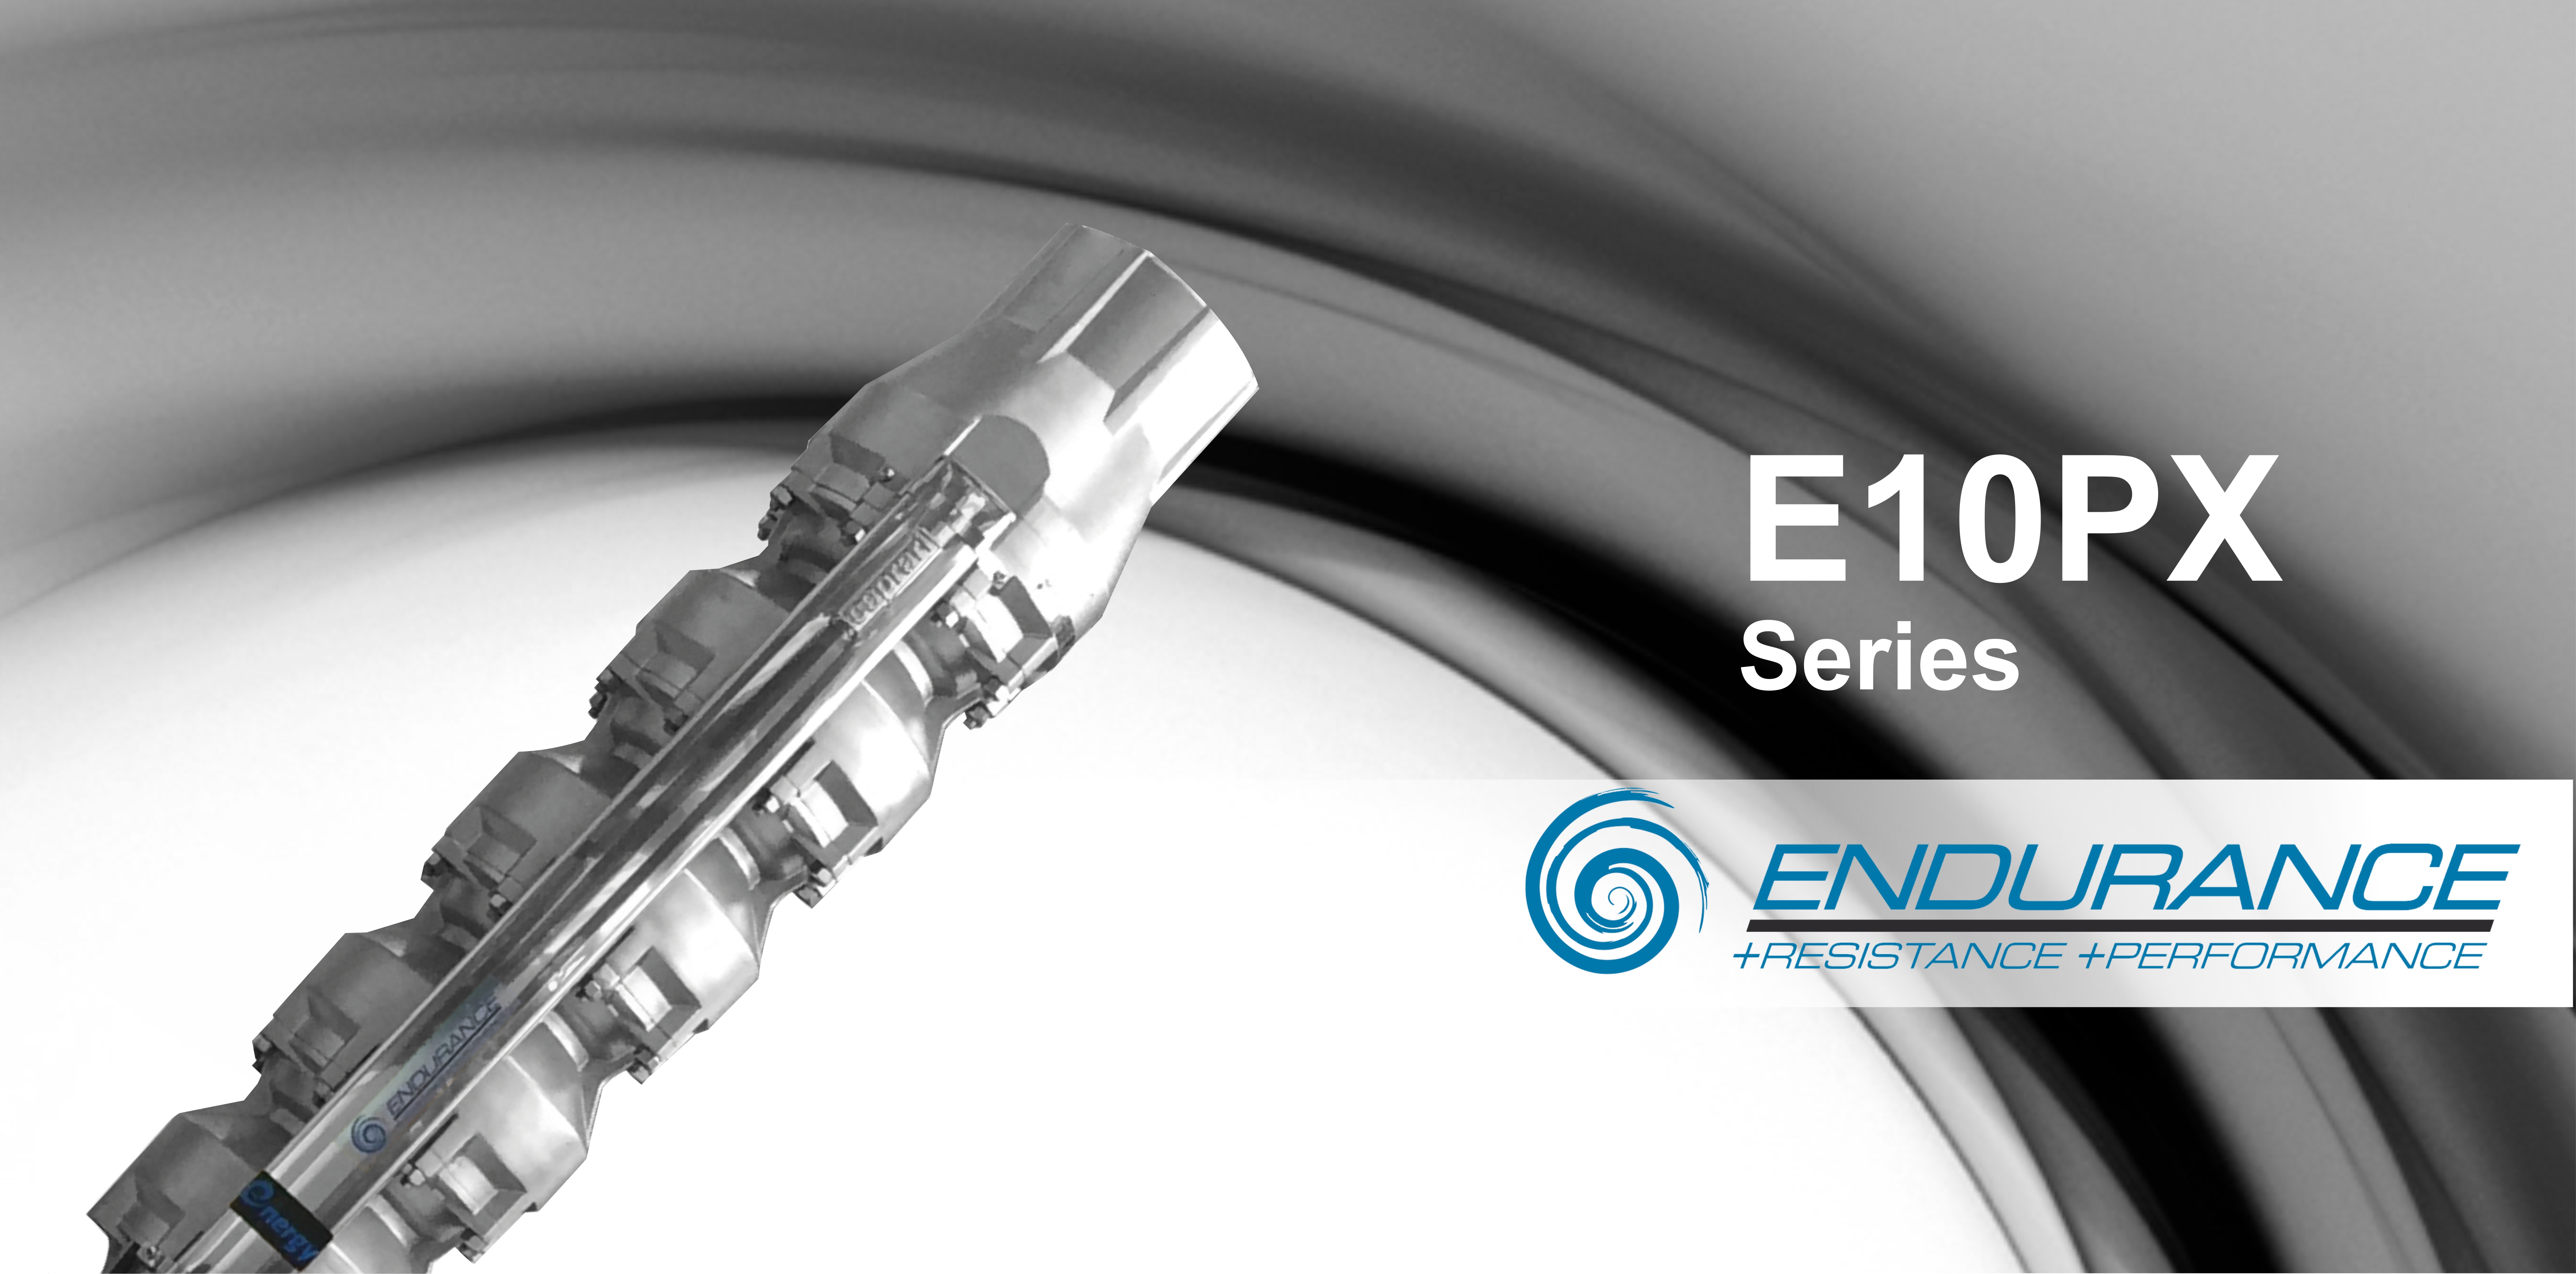 LAUNCH OF THE NEW E10PX: ENDURANCE NEVER STOP